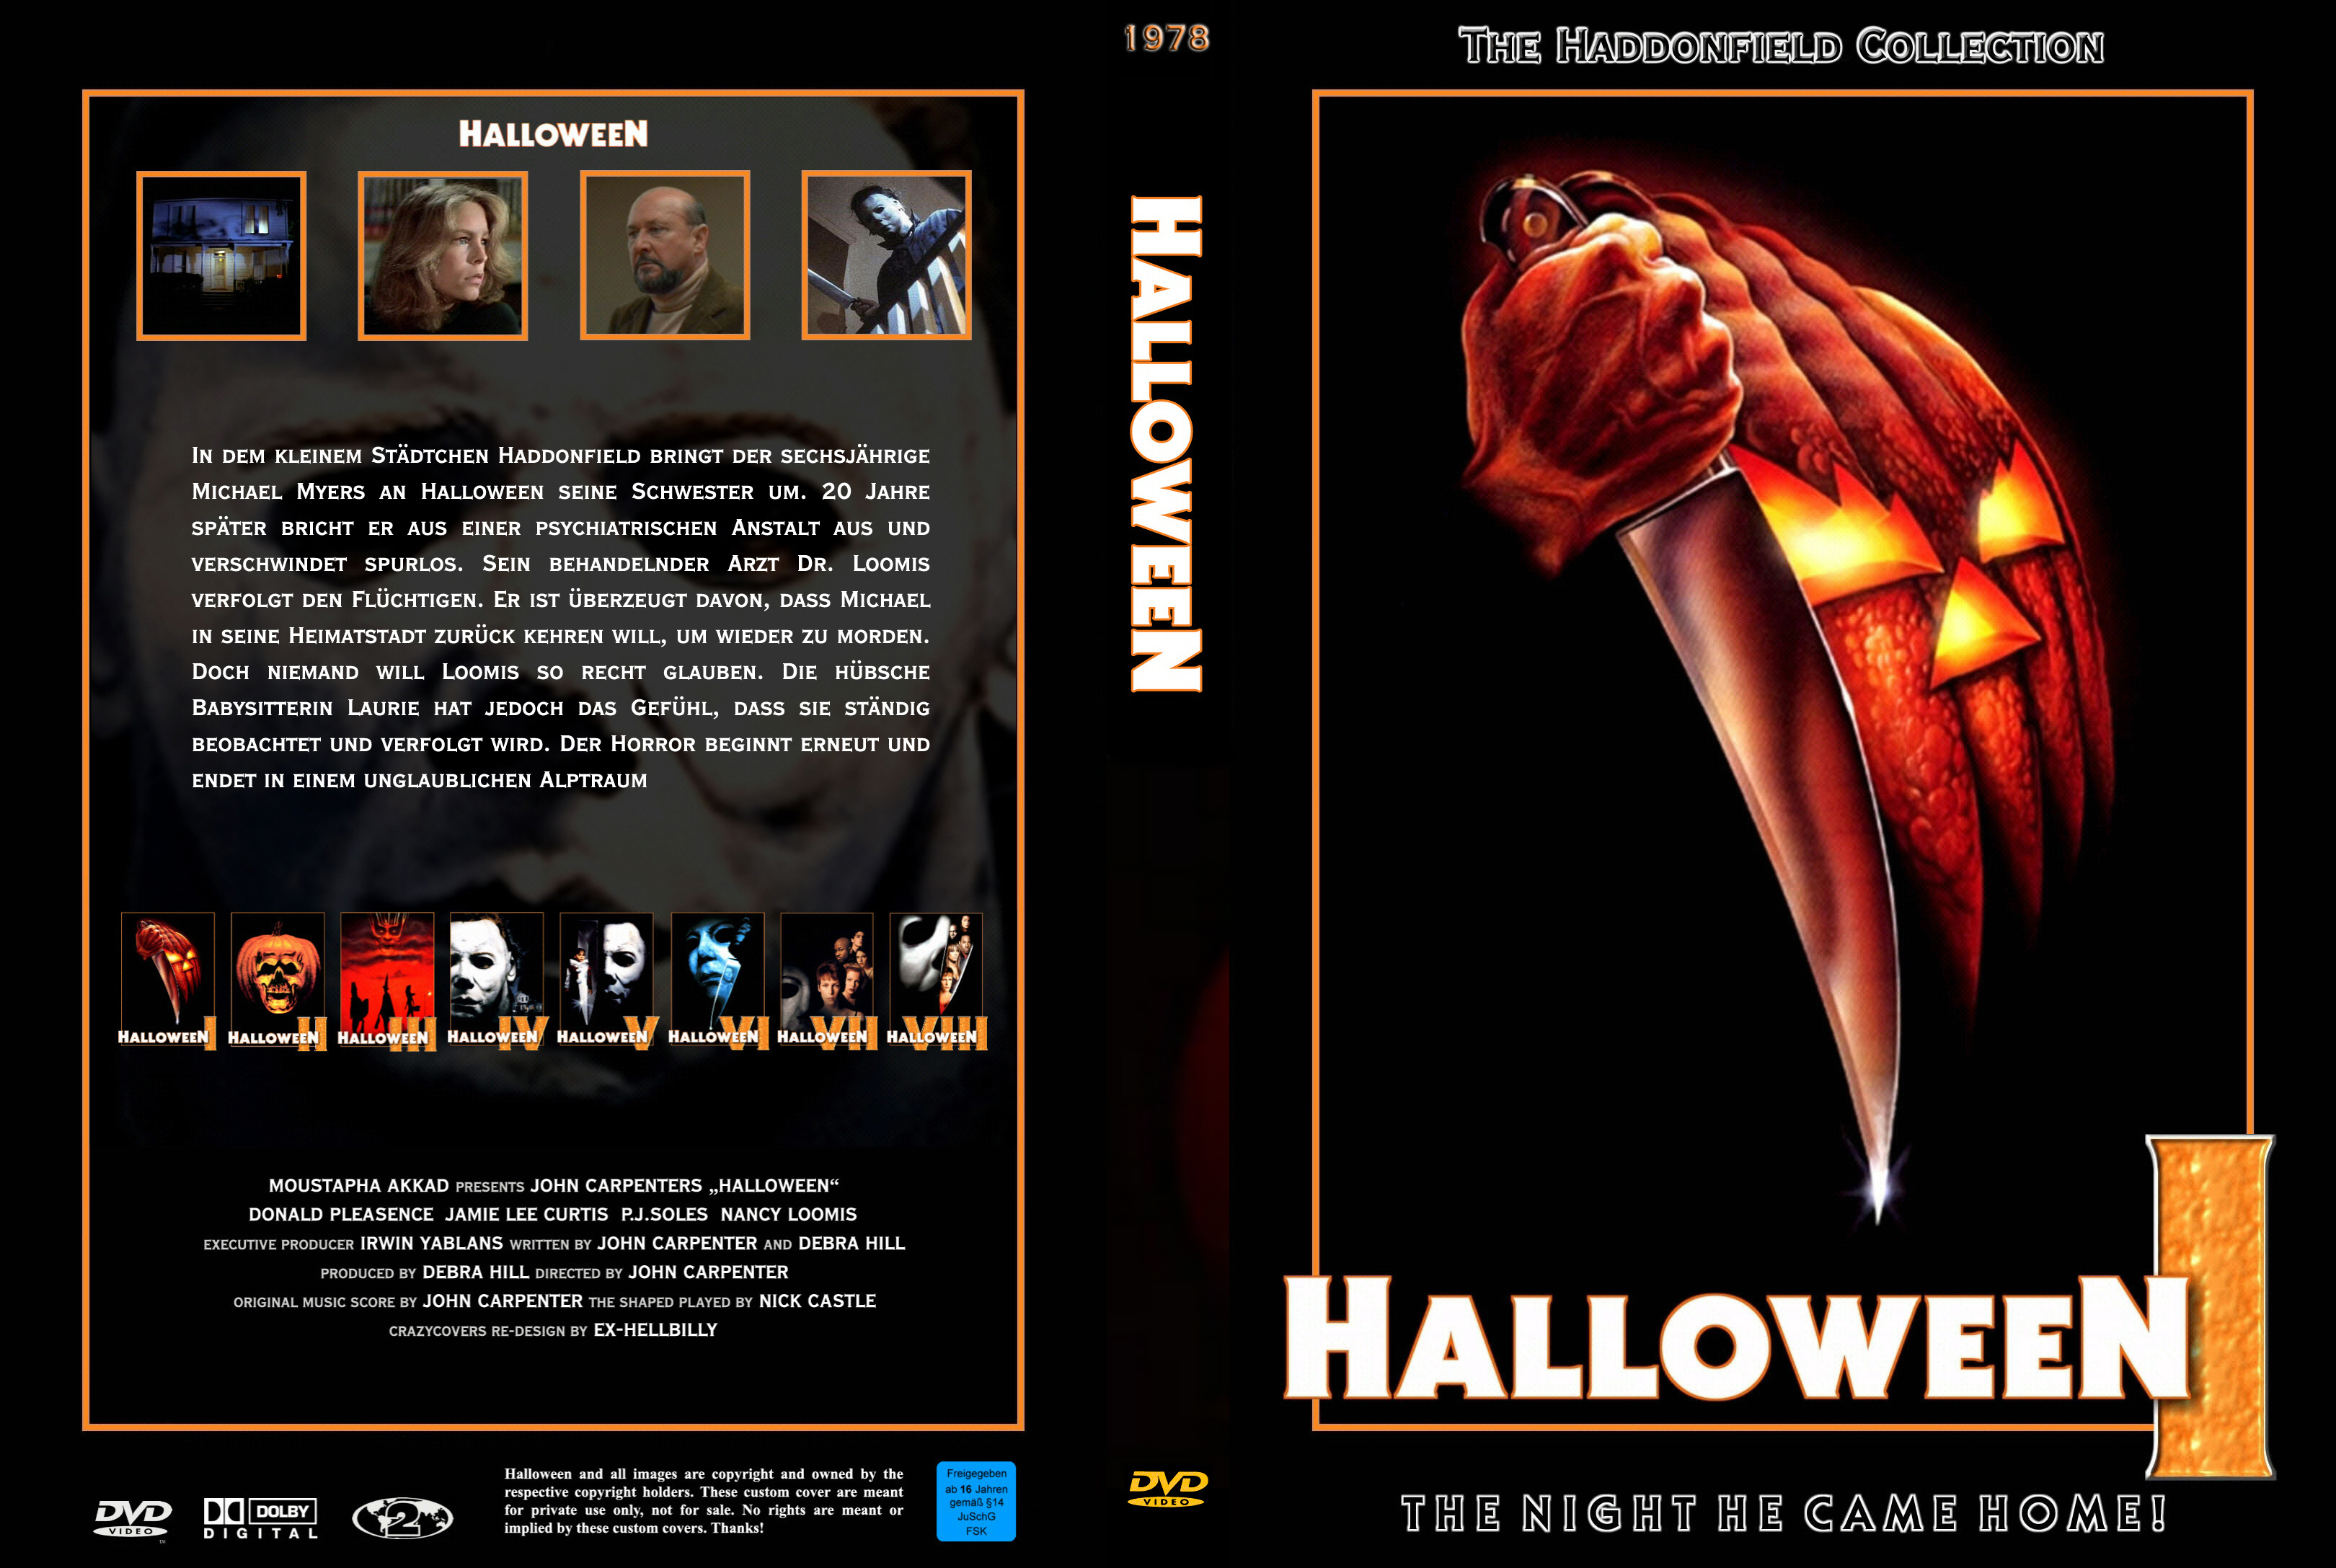 halloween 1 | dvd covers | cover century | over 500.000 album art